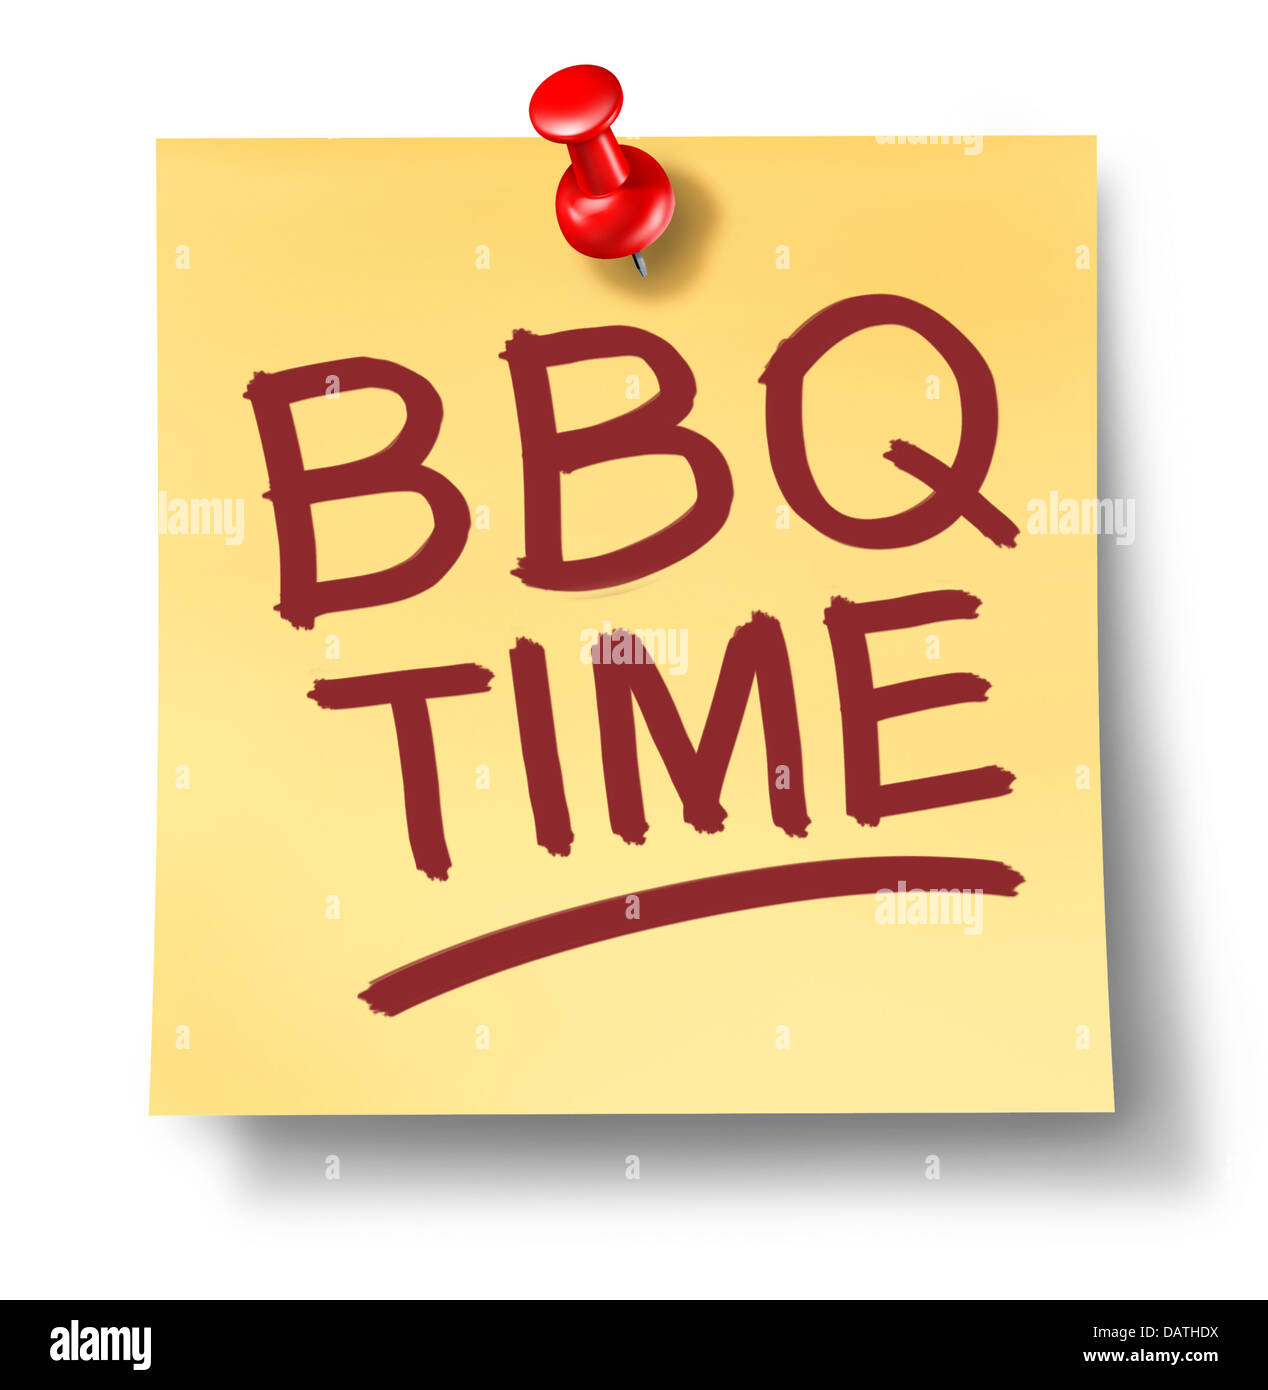 Etonnant ... Saying BBQ Time On A White Background With A Red Thumb Tack As A  Leisure Activity Symbol Of Cooking Meat On A Hot Grill For An Outdoor Party  Or Summer